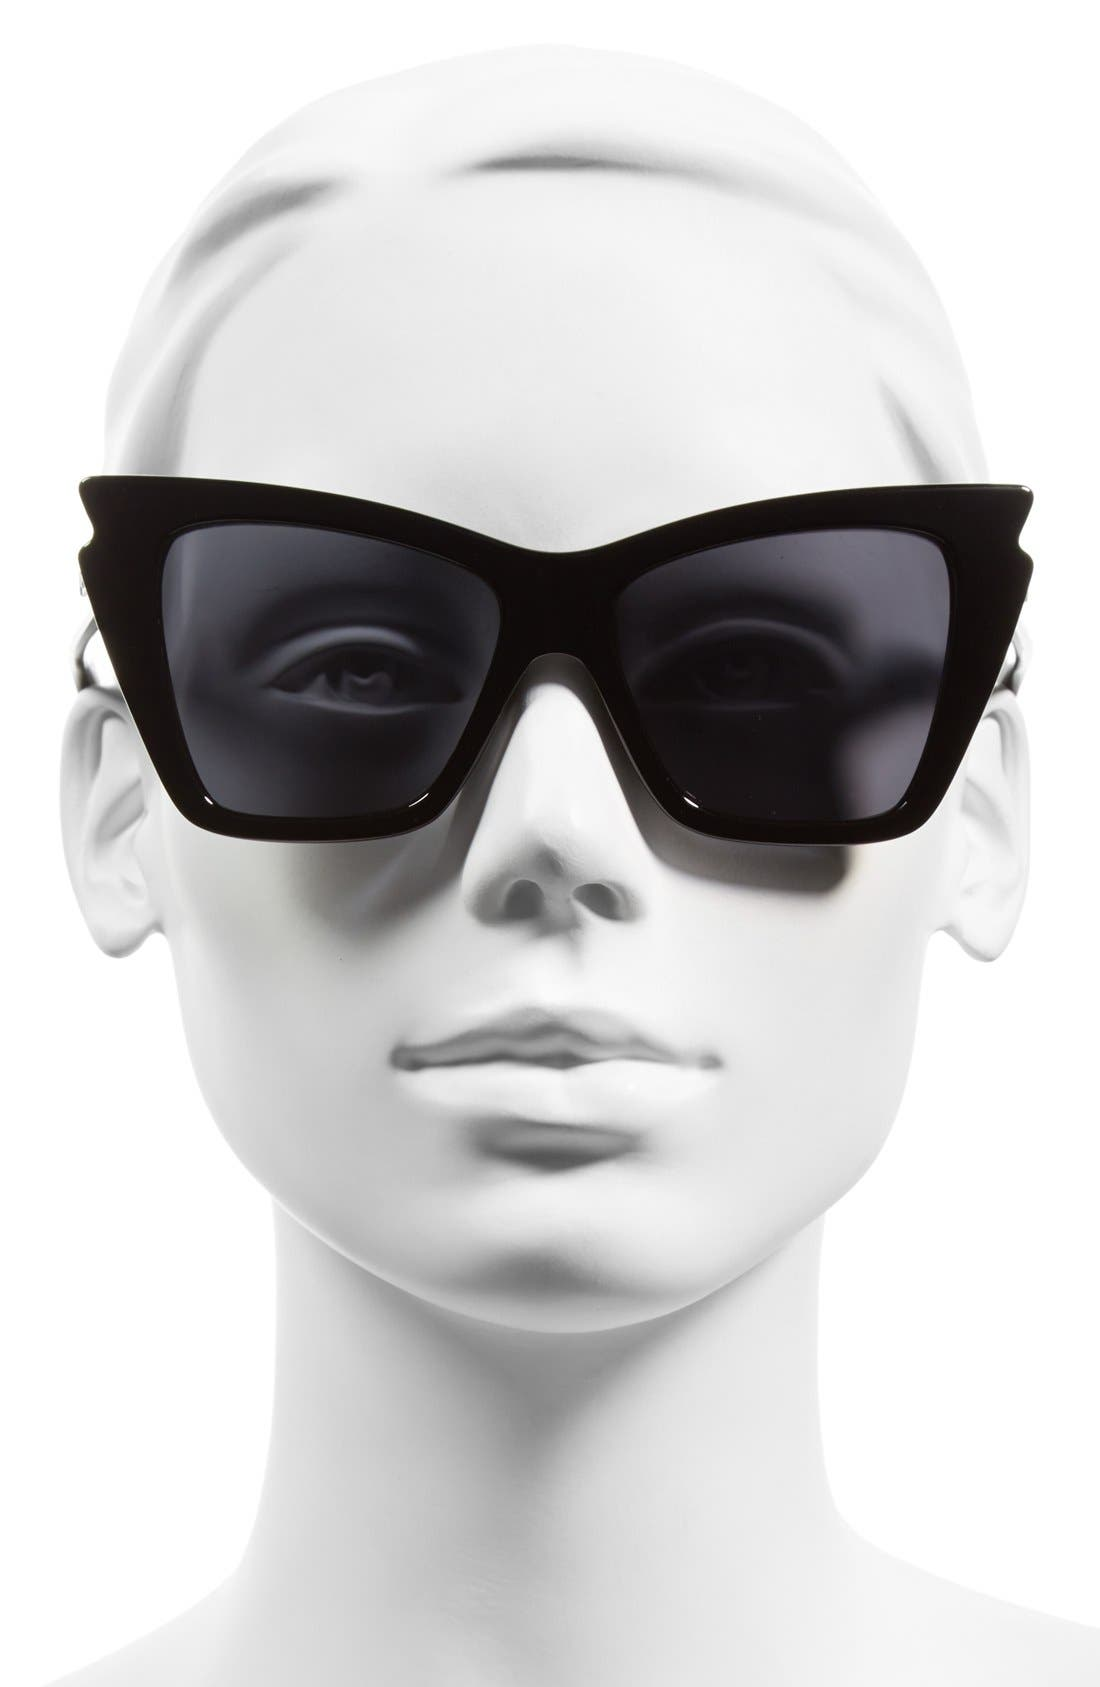 'Rapture' 55mm Bat Wing Sunglasses,                             Alternate thumbnail 2, color,                             Black